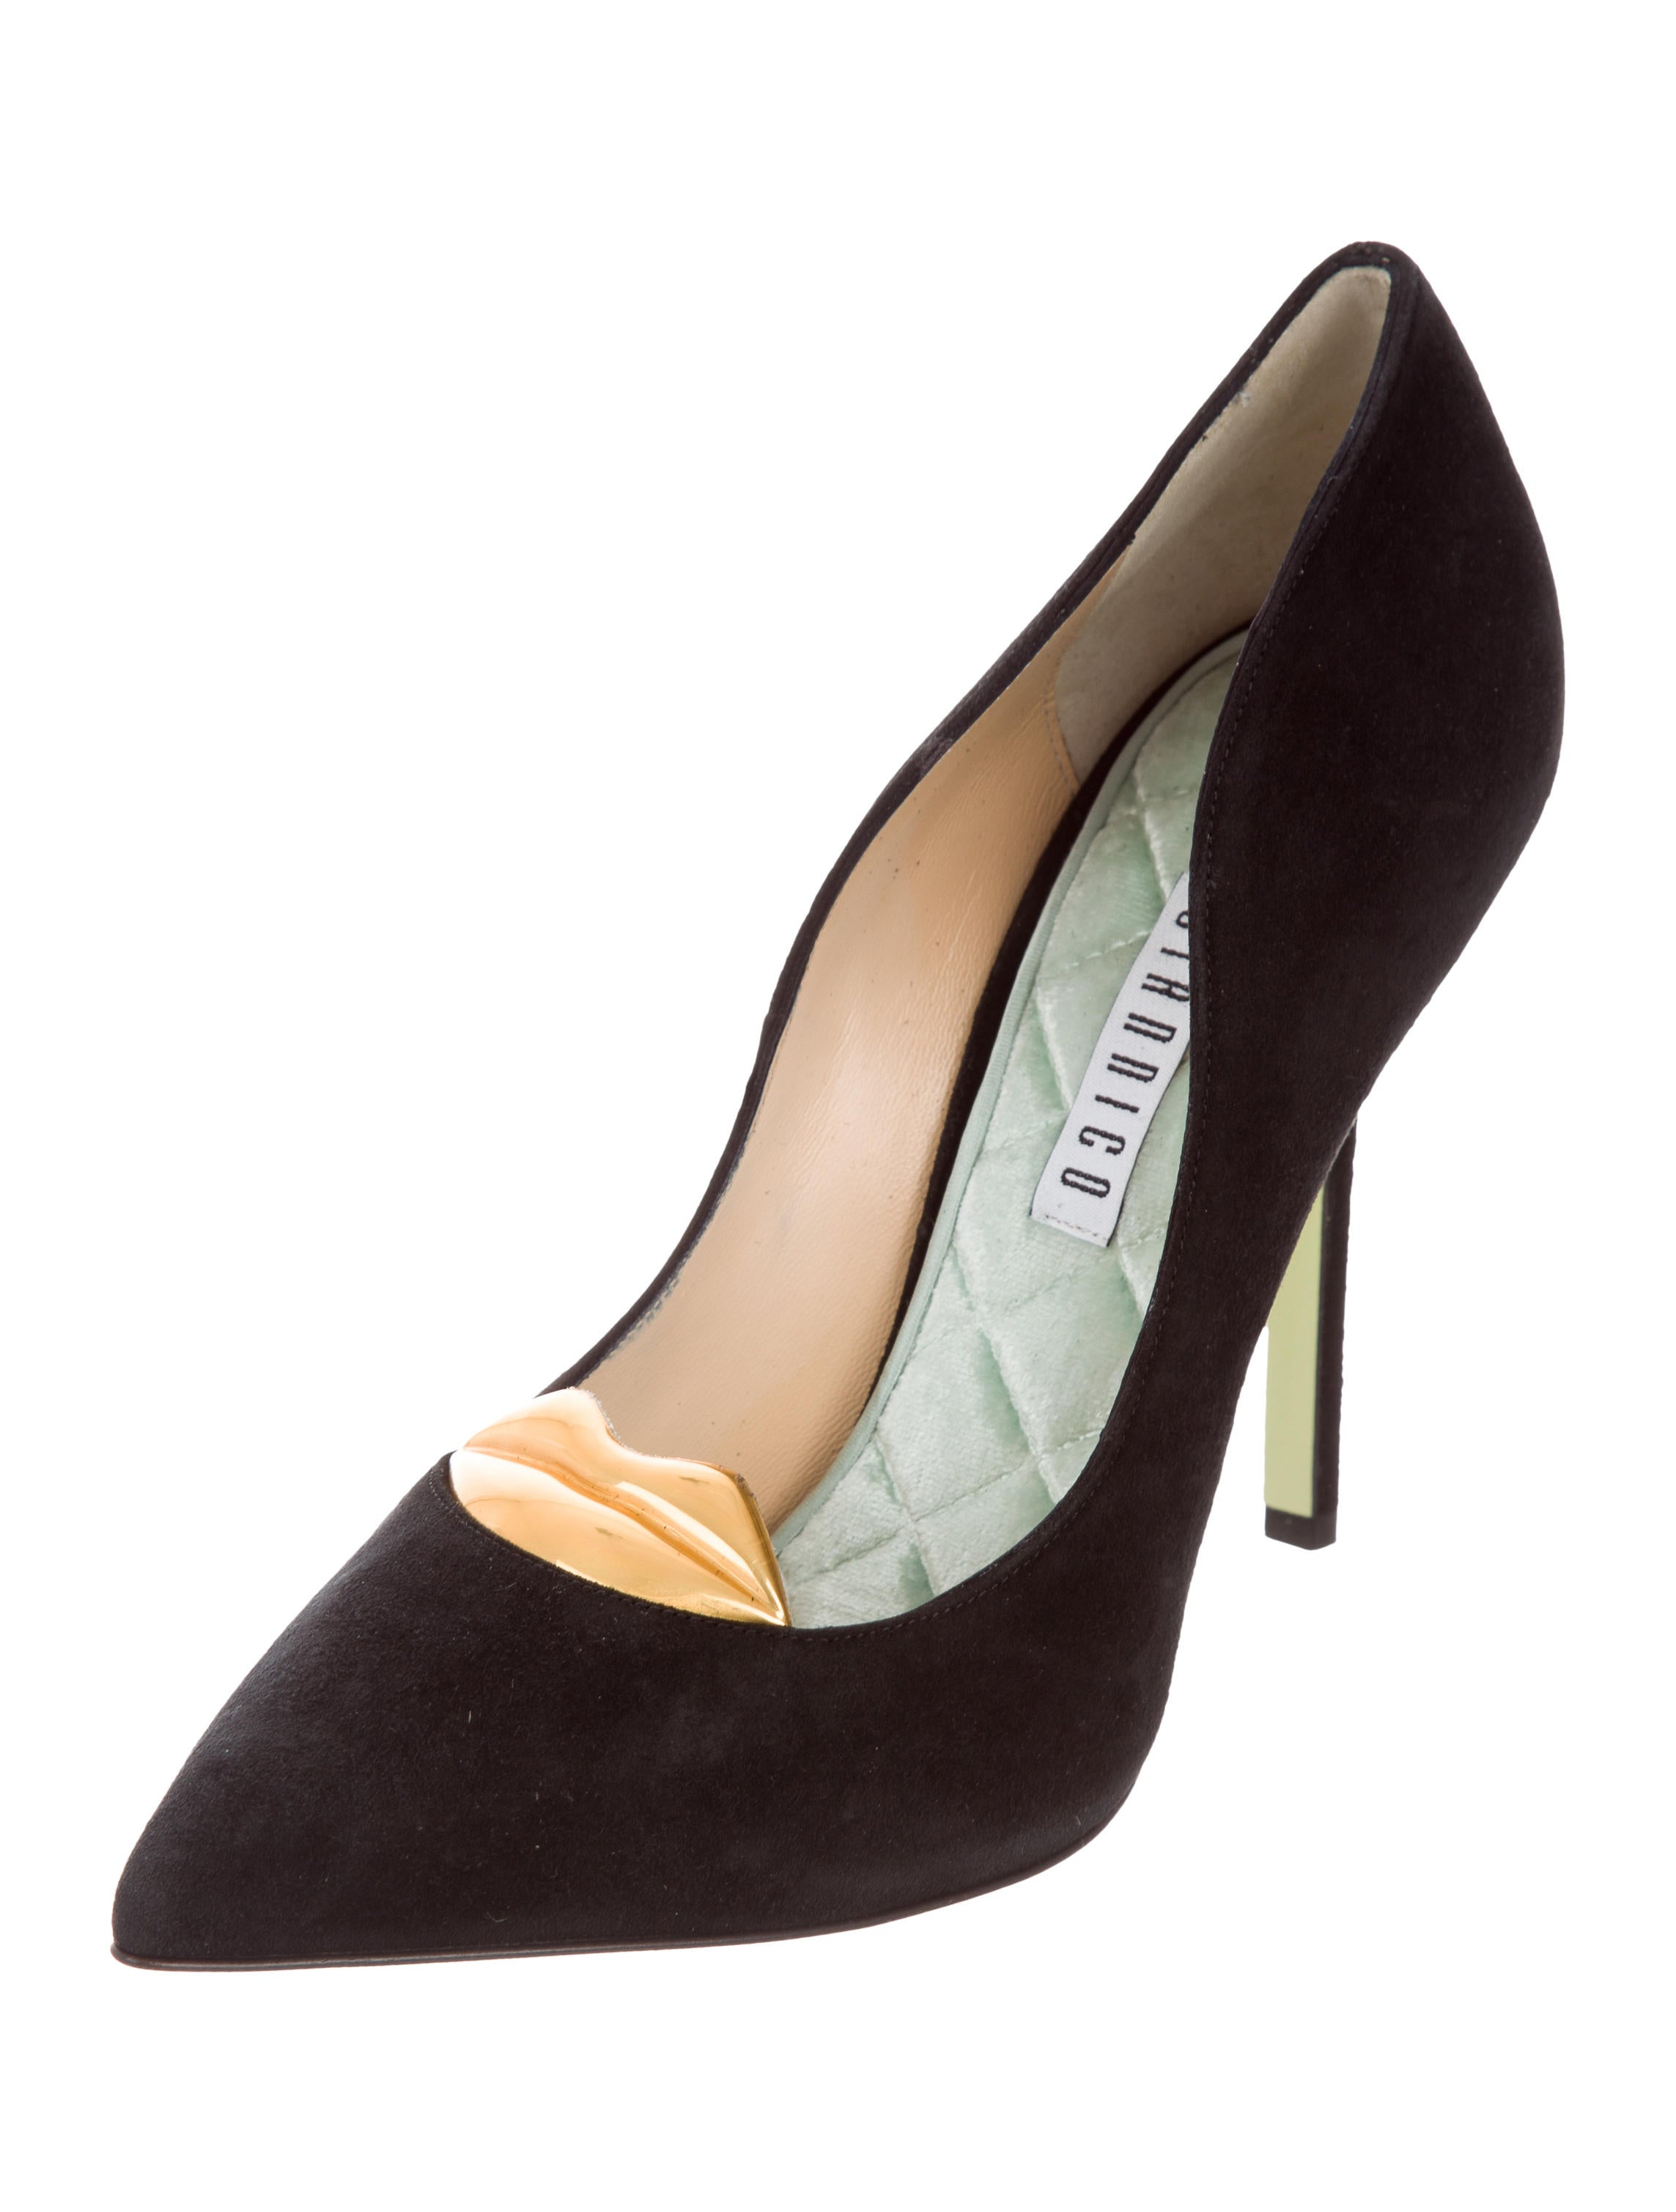 Giannico Superlola Suede Pumps w/ Tags free shipping newest great deals cheap price sale latest collections CxQWVzVkh